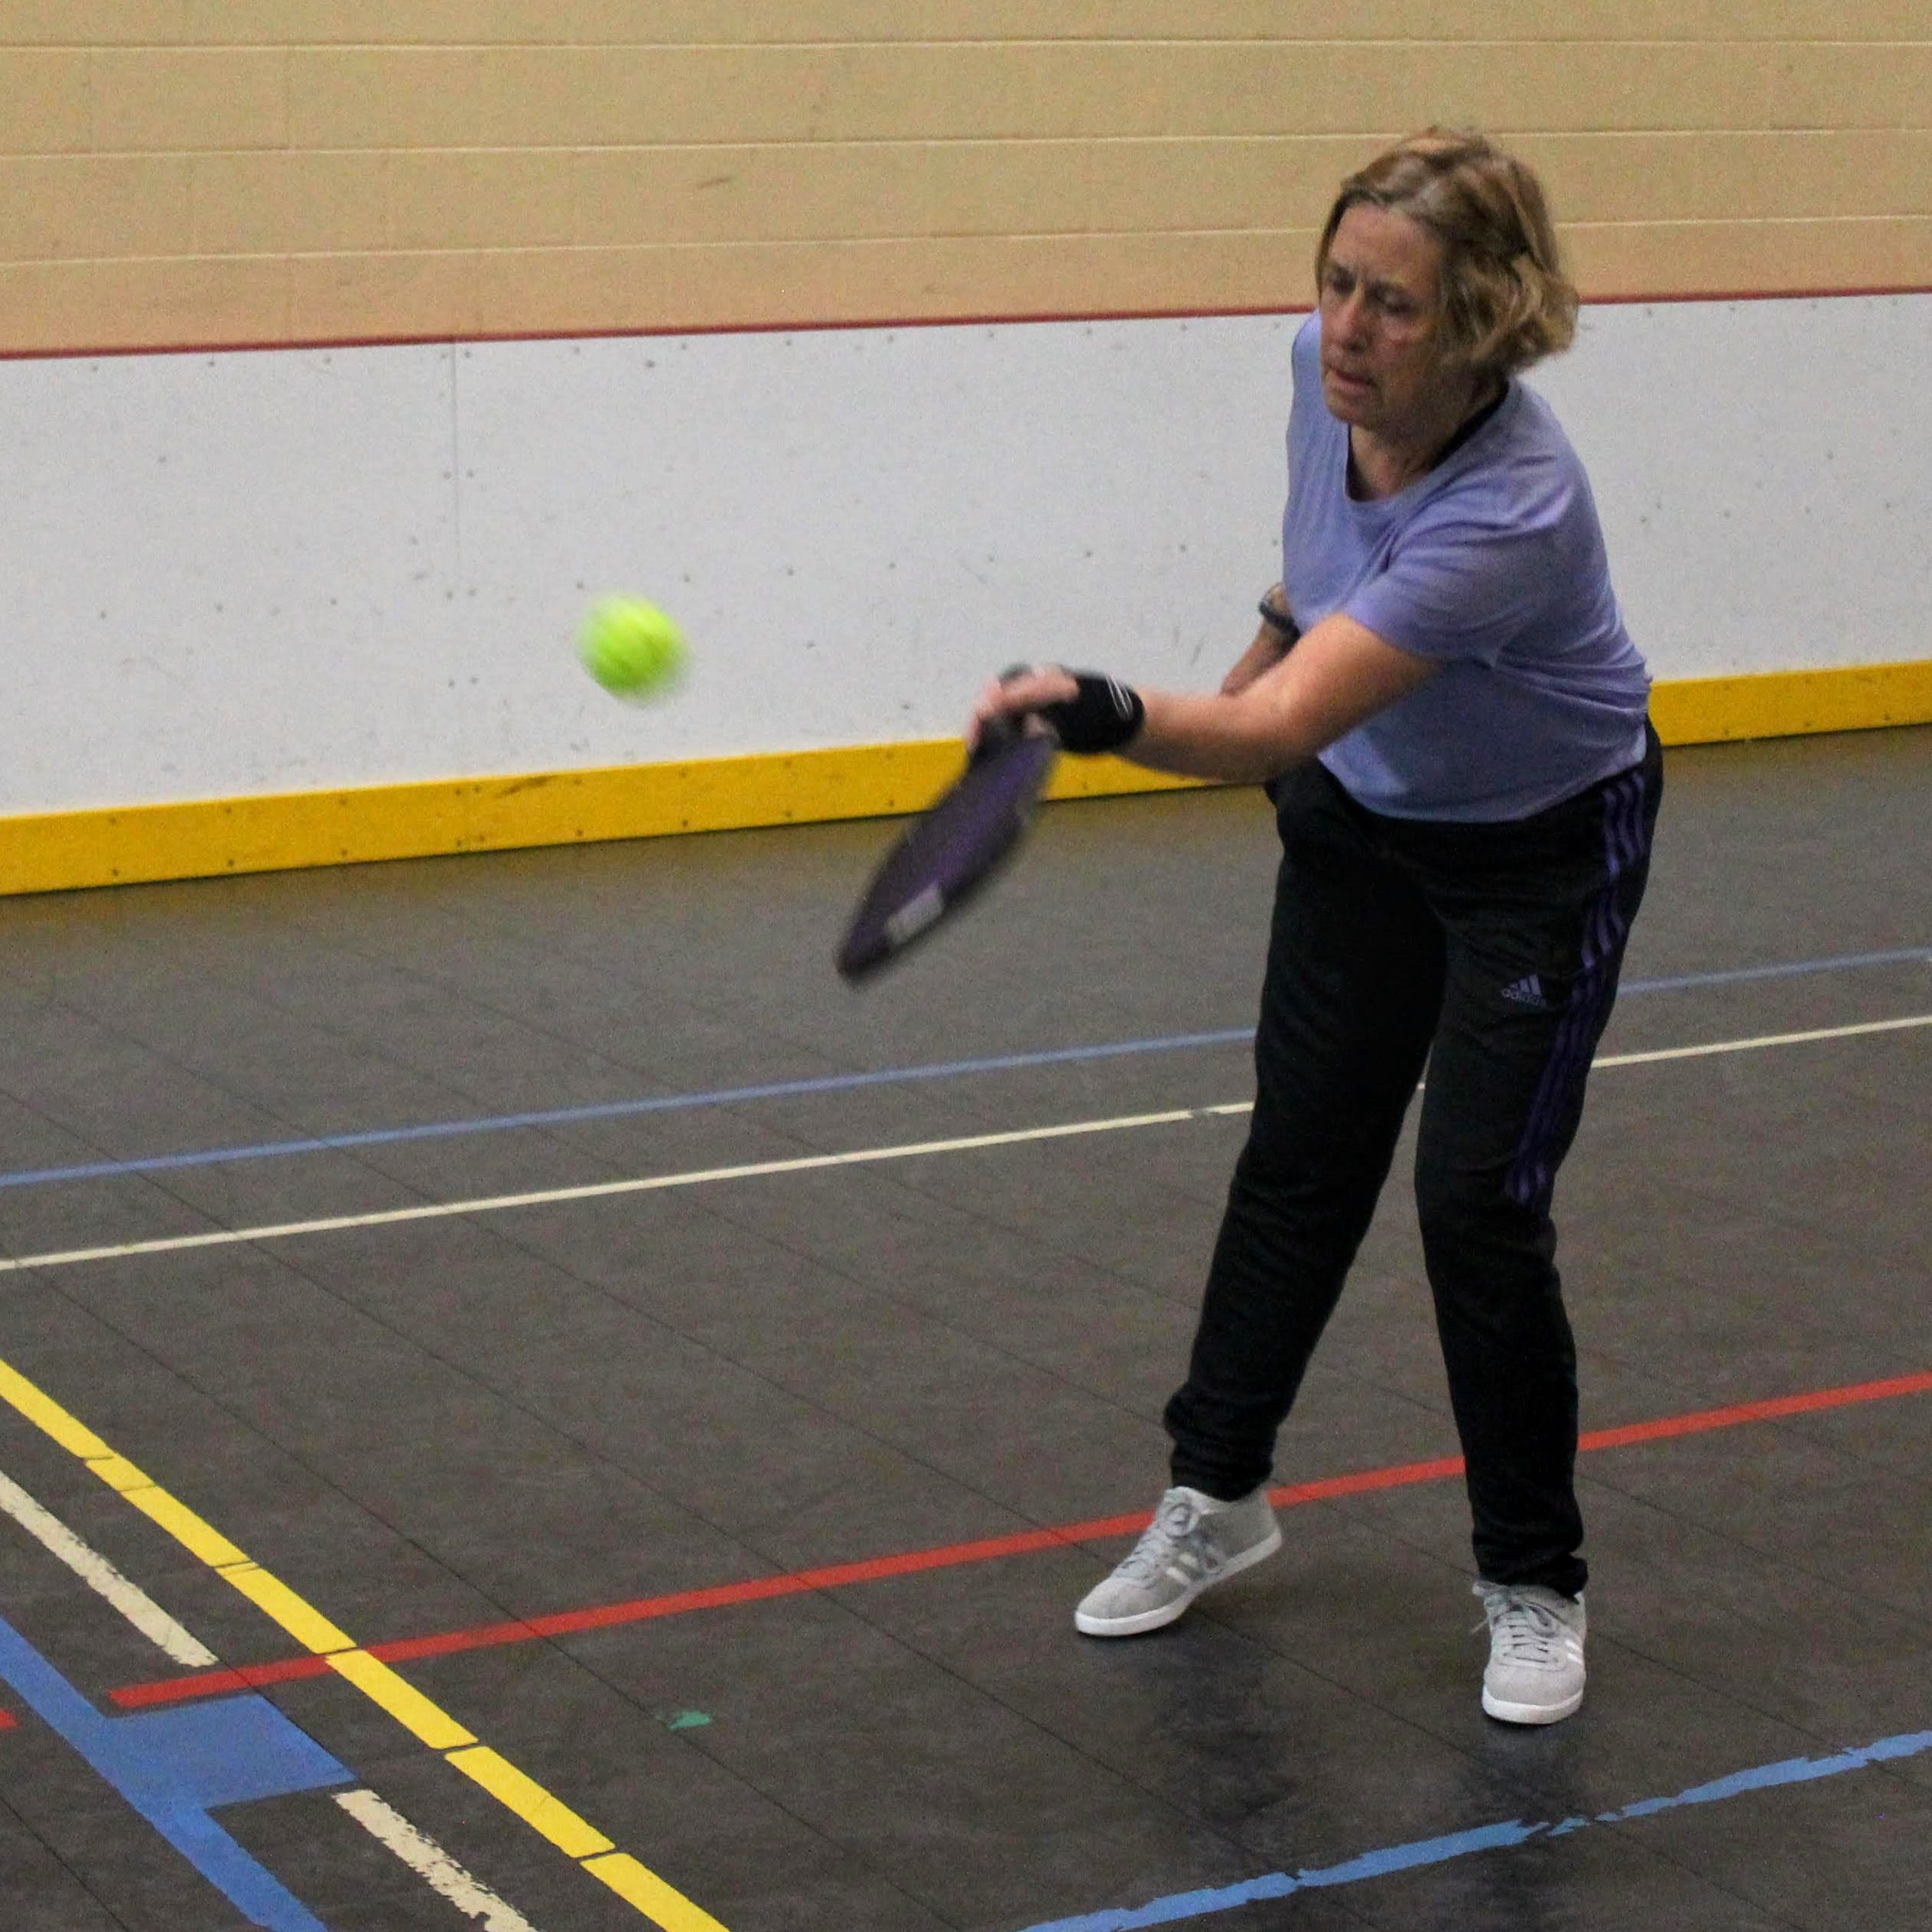 New pickleball courts coming to Livonia's Compton Park as sport increases in popularity